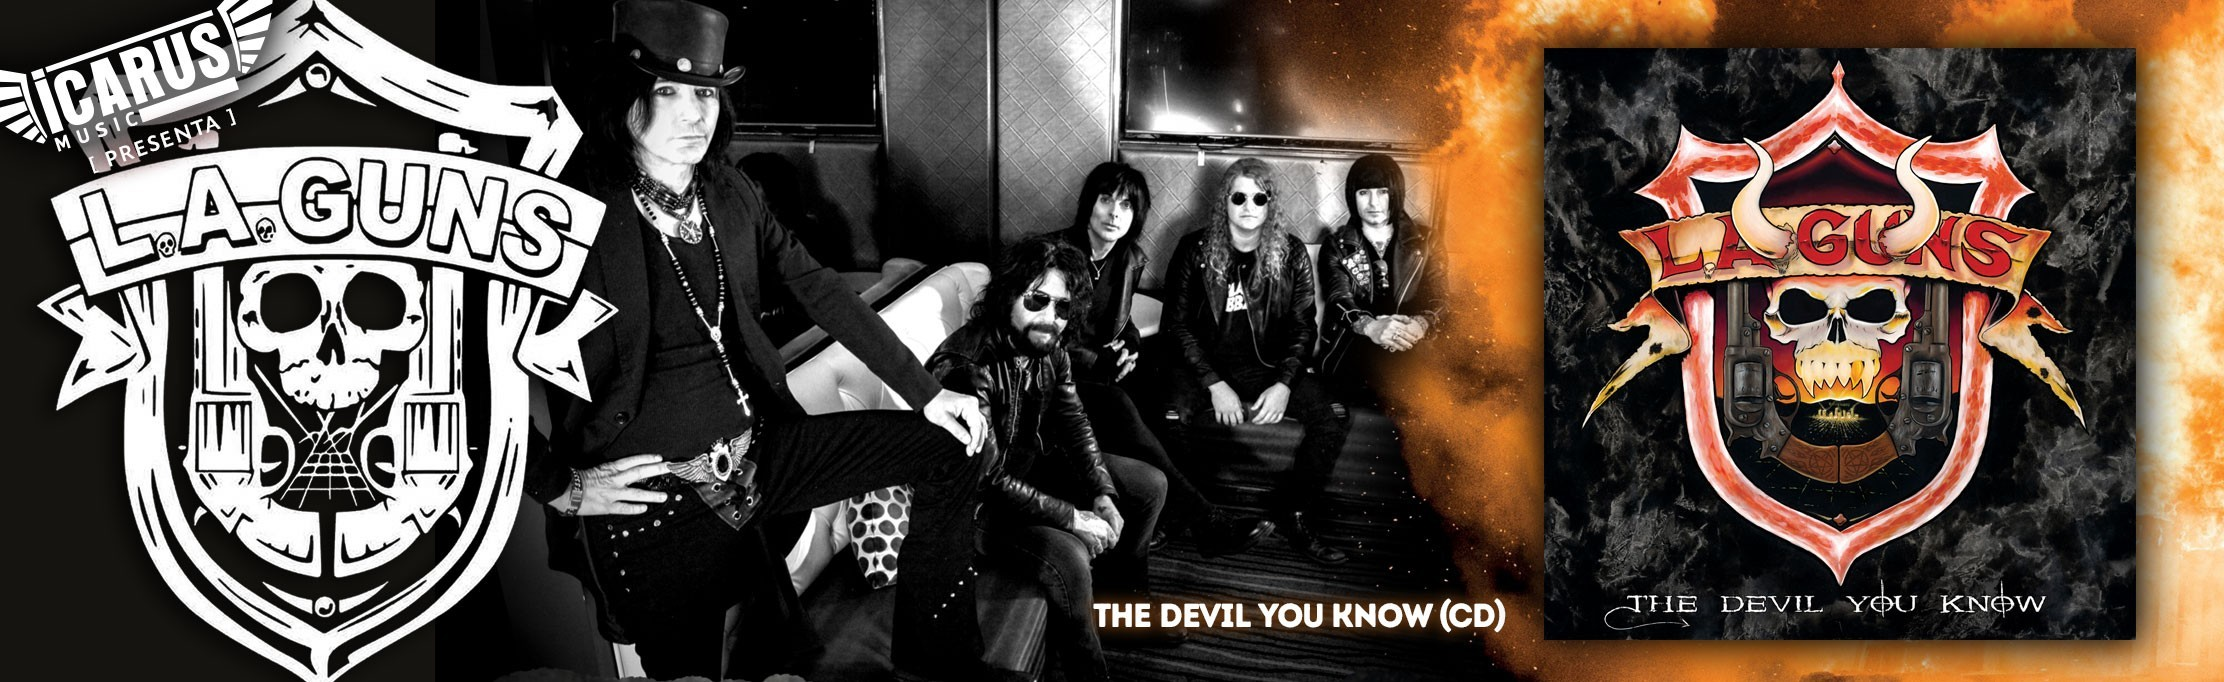 L.A. GUNS - The devil you know - Cd  Musicalmente, «The Devil You Know» cubre muchos estilos e incorpora influencias desde Black Sabbath a Led Zeppelin